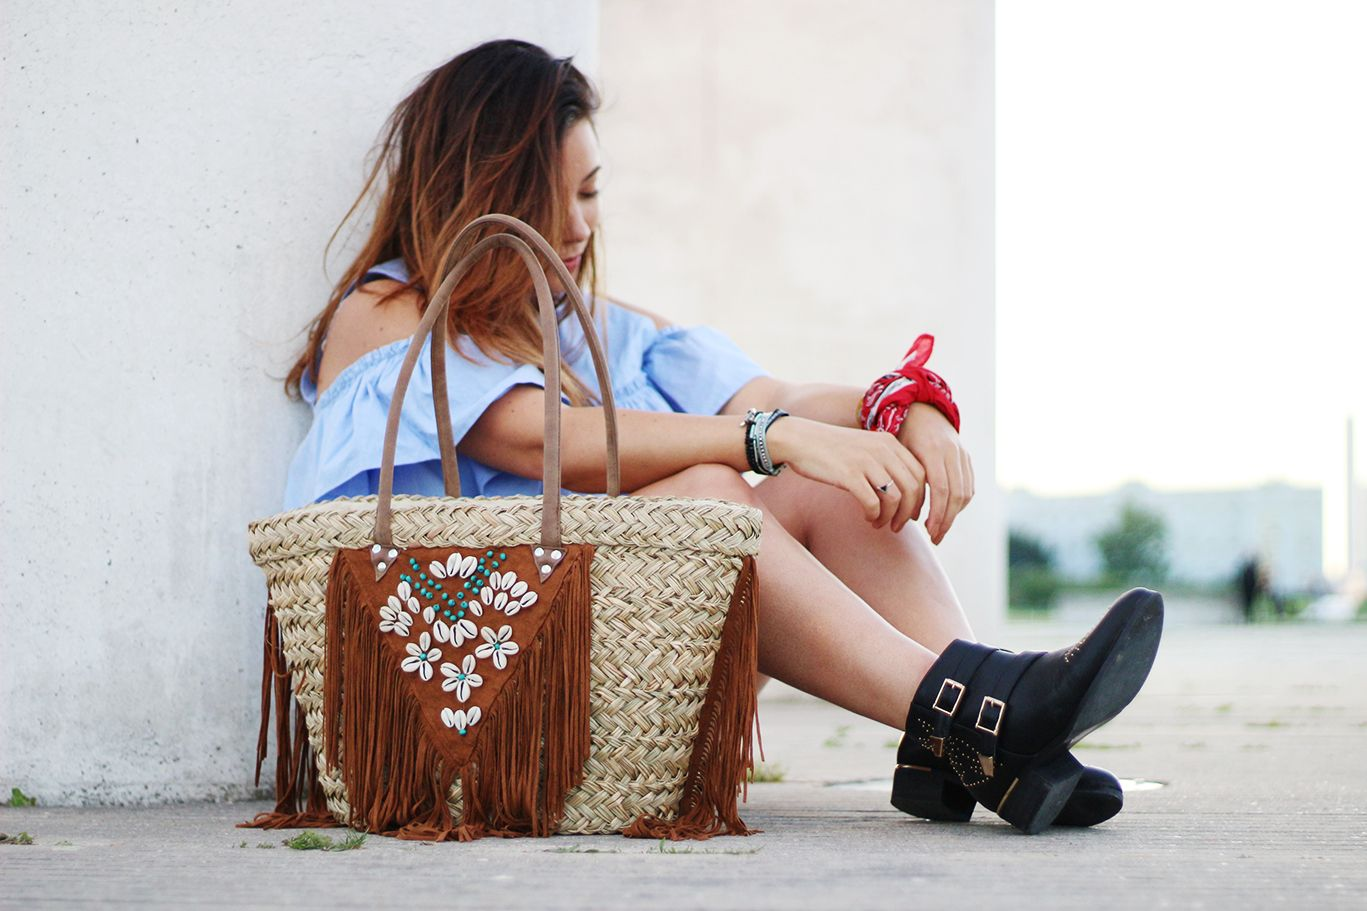 shorts noir zara cuir, short zara simili cuir, short simili cuir, sac hipanema, bracelet hipanema, hipanema, top bleu zara, col bardot, bottines inspi chloé, susanna chloé, primark, style western, fashion, blogueuse mode, bandana, coachella, festivals look, rock festival